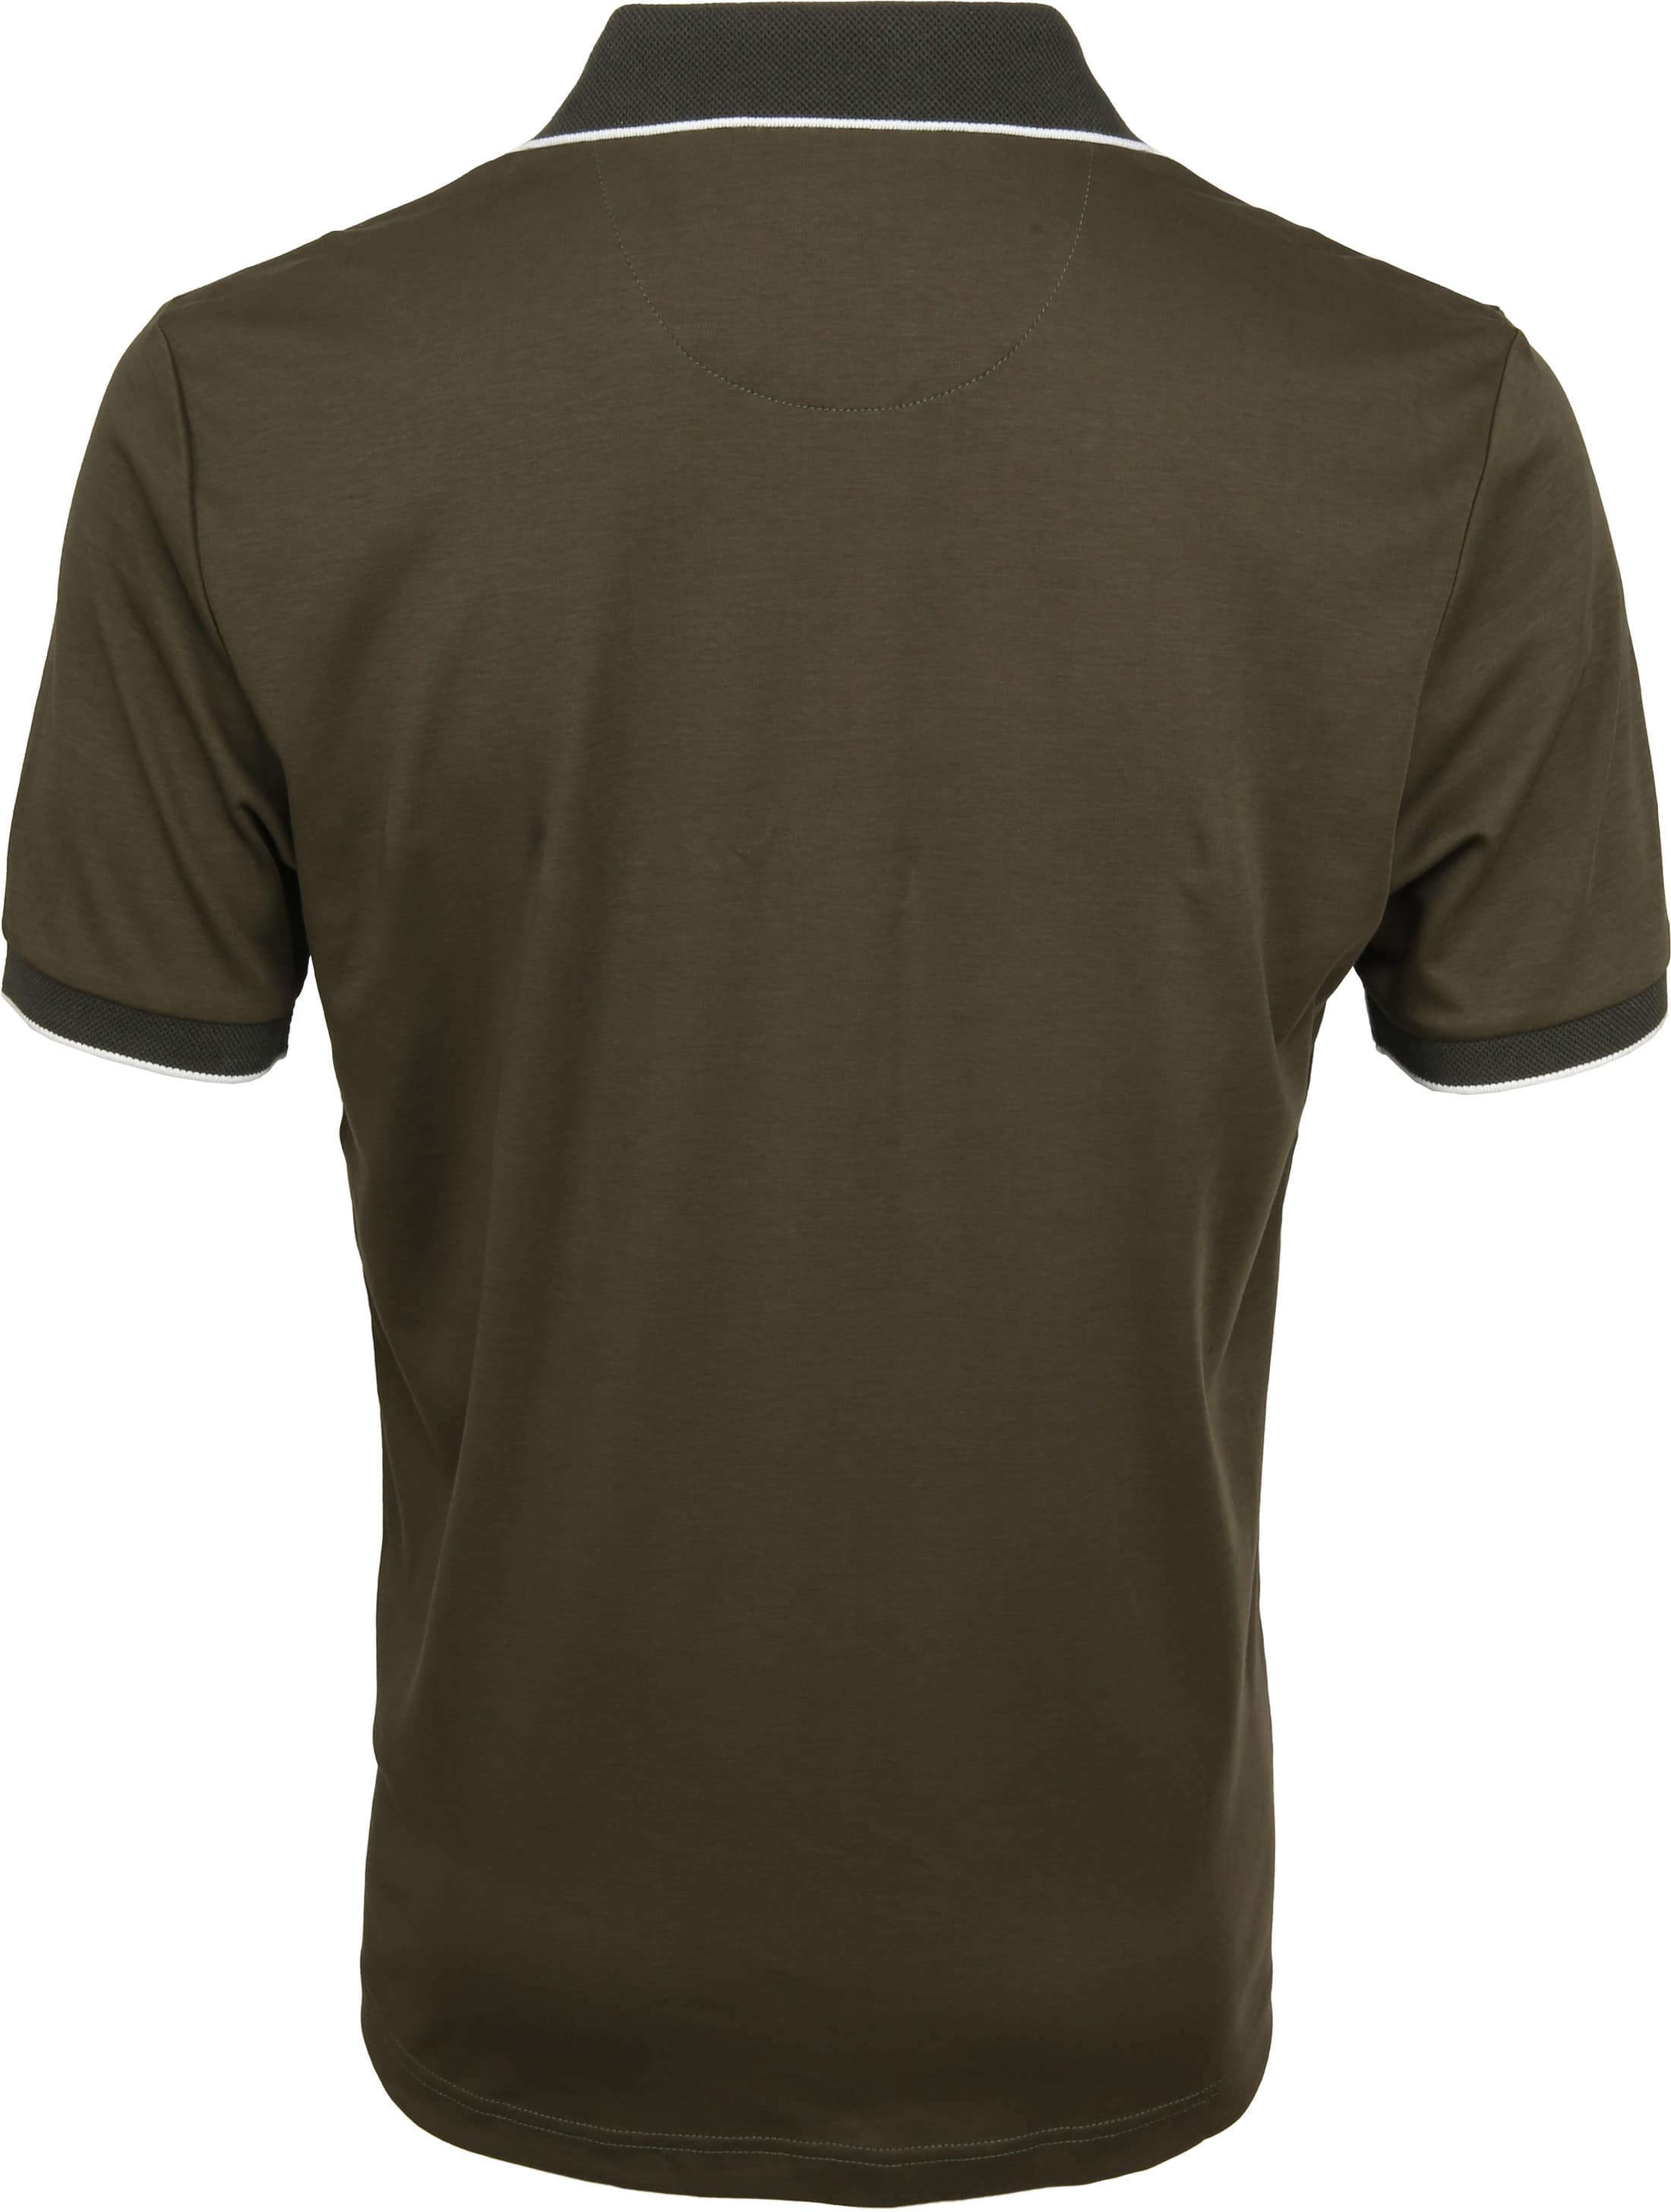 Suitable Liquid Poloshirt Olive Green foto 3